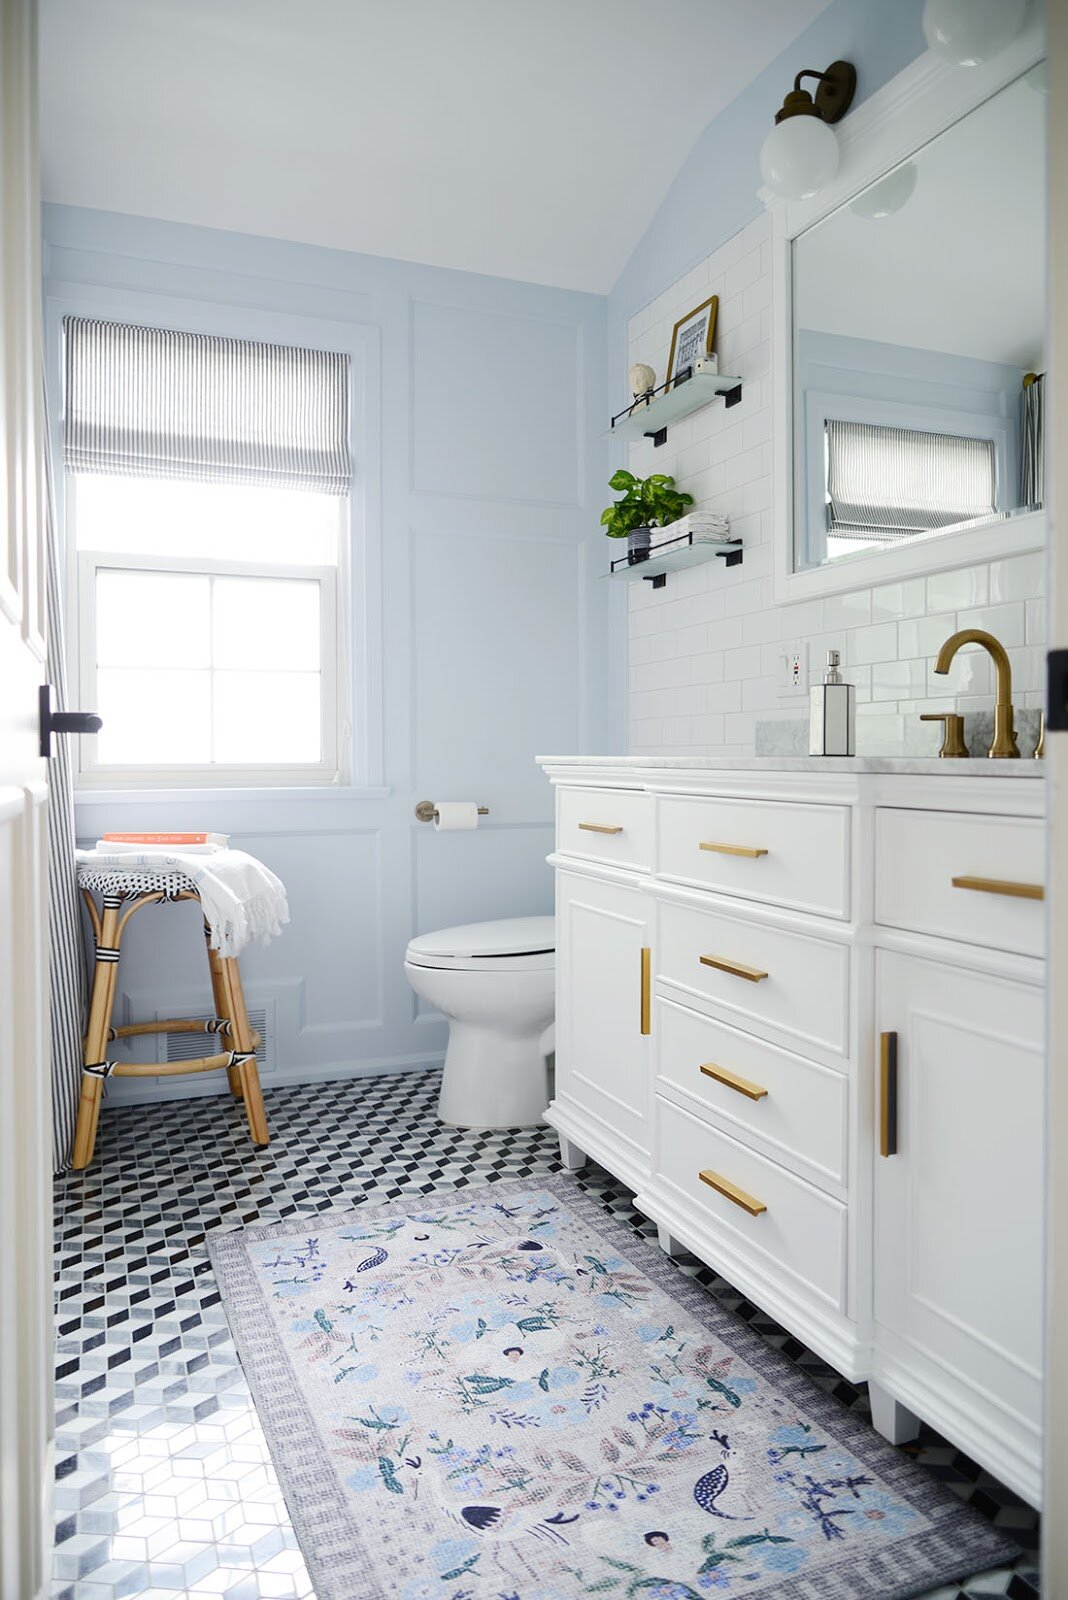 light-blue-bathroom-paint-colors-that-add-value-to-your-house-nordroom (1)